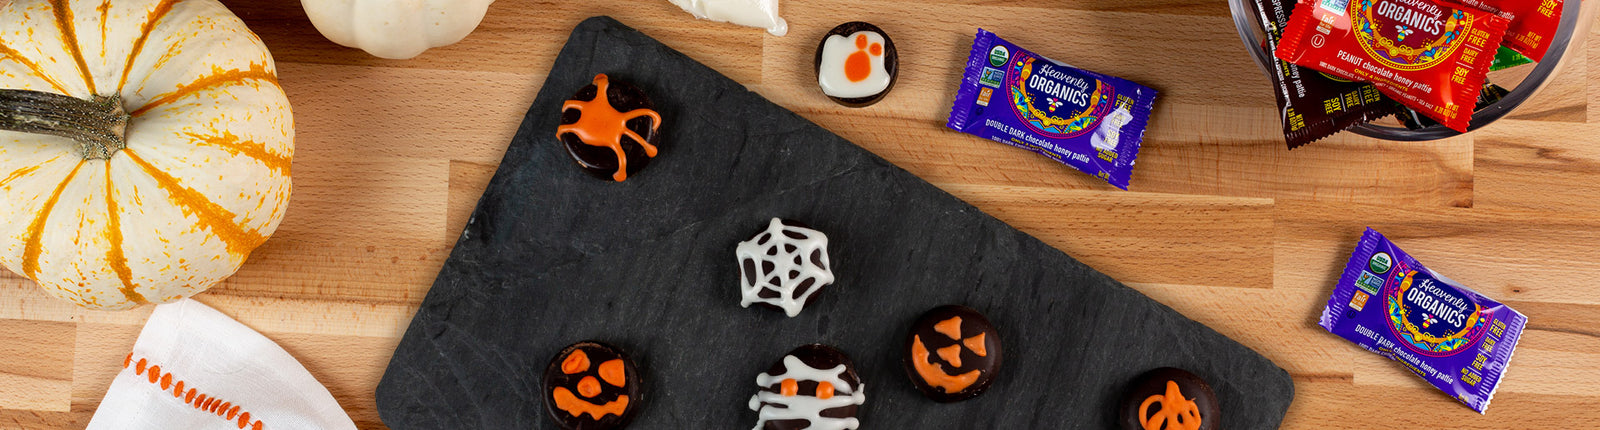 Trick-or-Treat: Spooky Chocolate Honey Patties